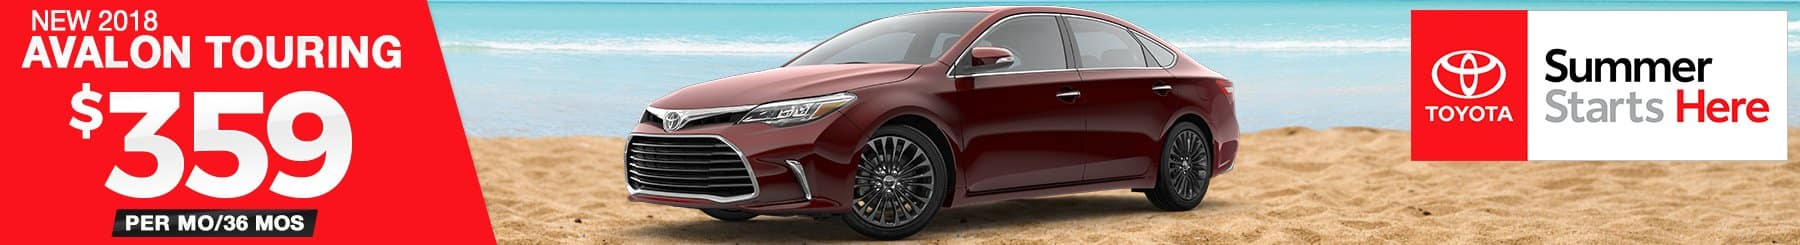 Avalon-Touring-Lease-Special